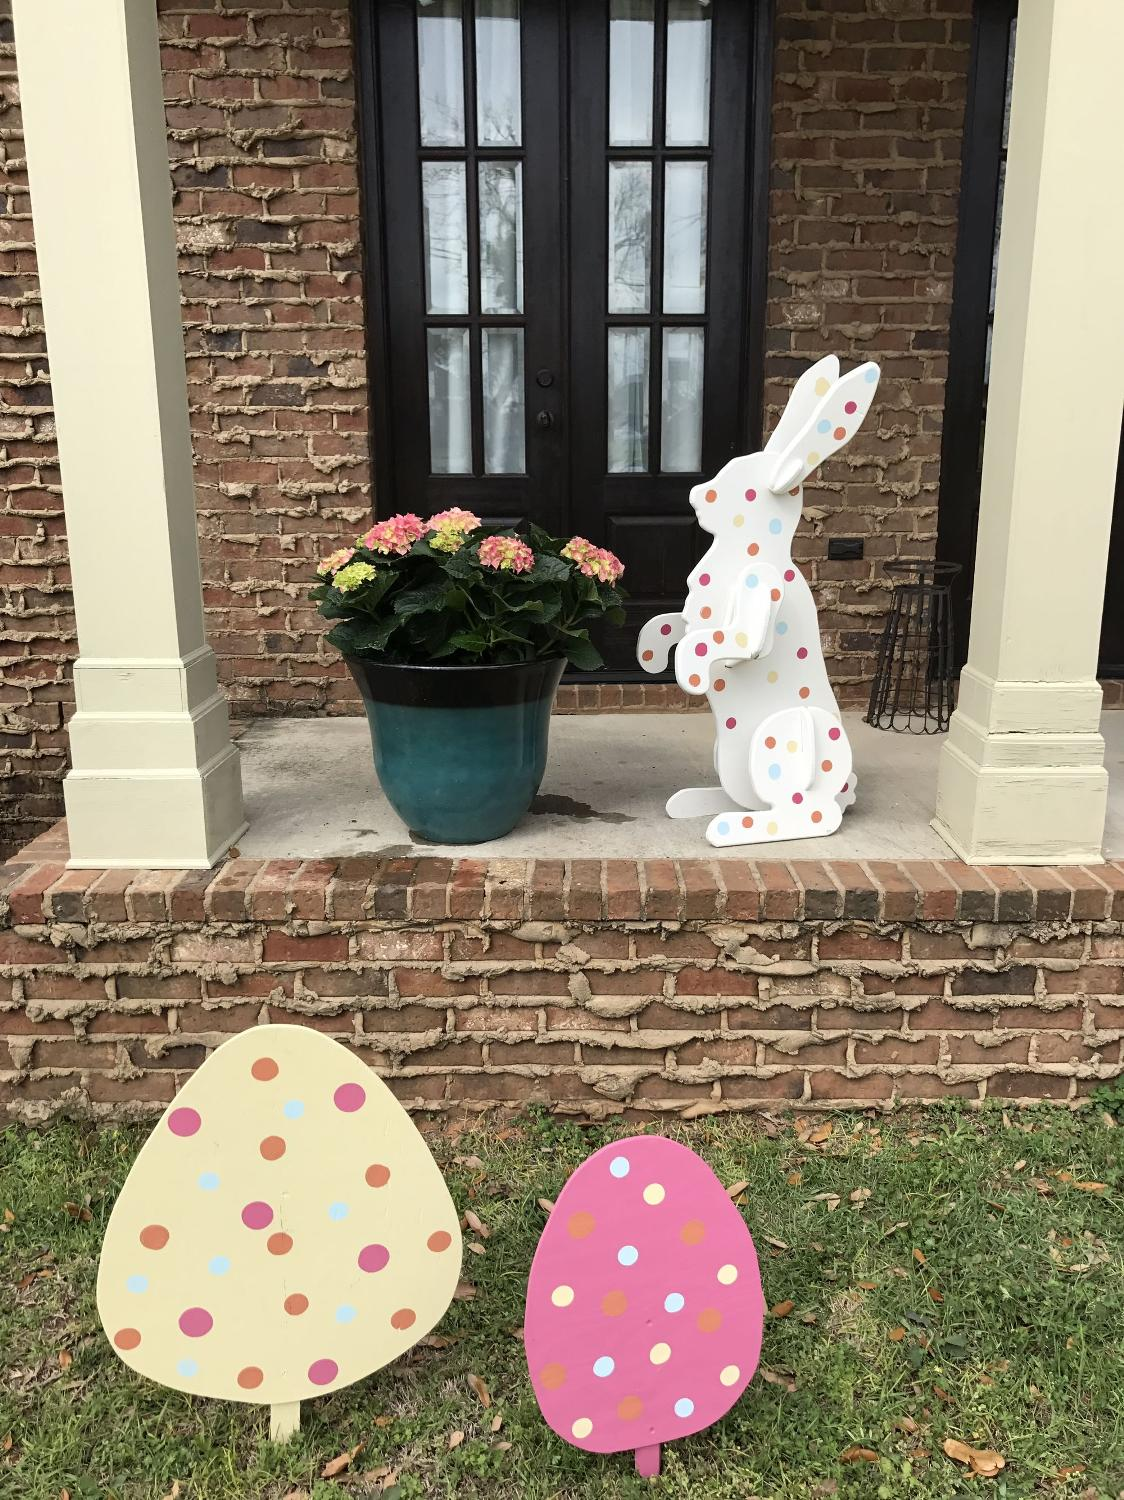 Best easter yard decorations for sale in mobile alabama for Yard decorations for sale